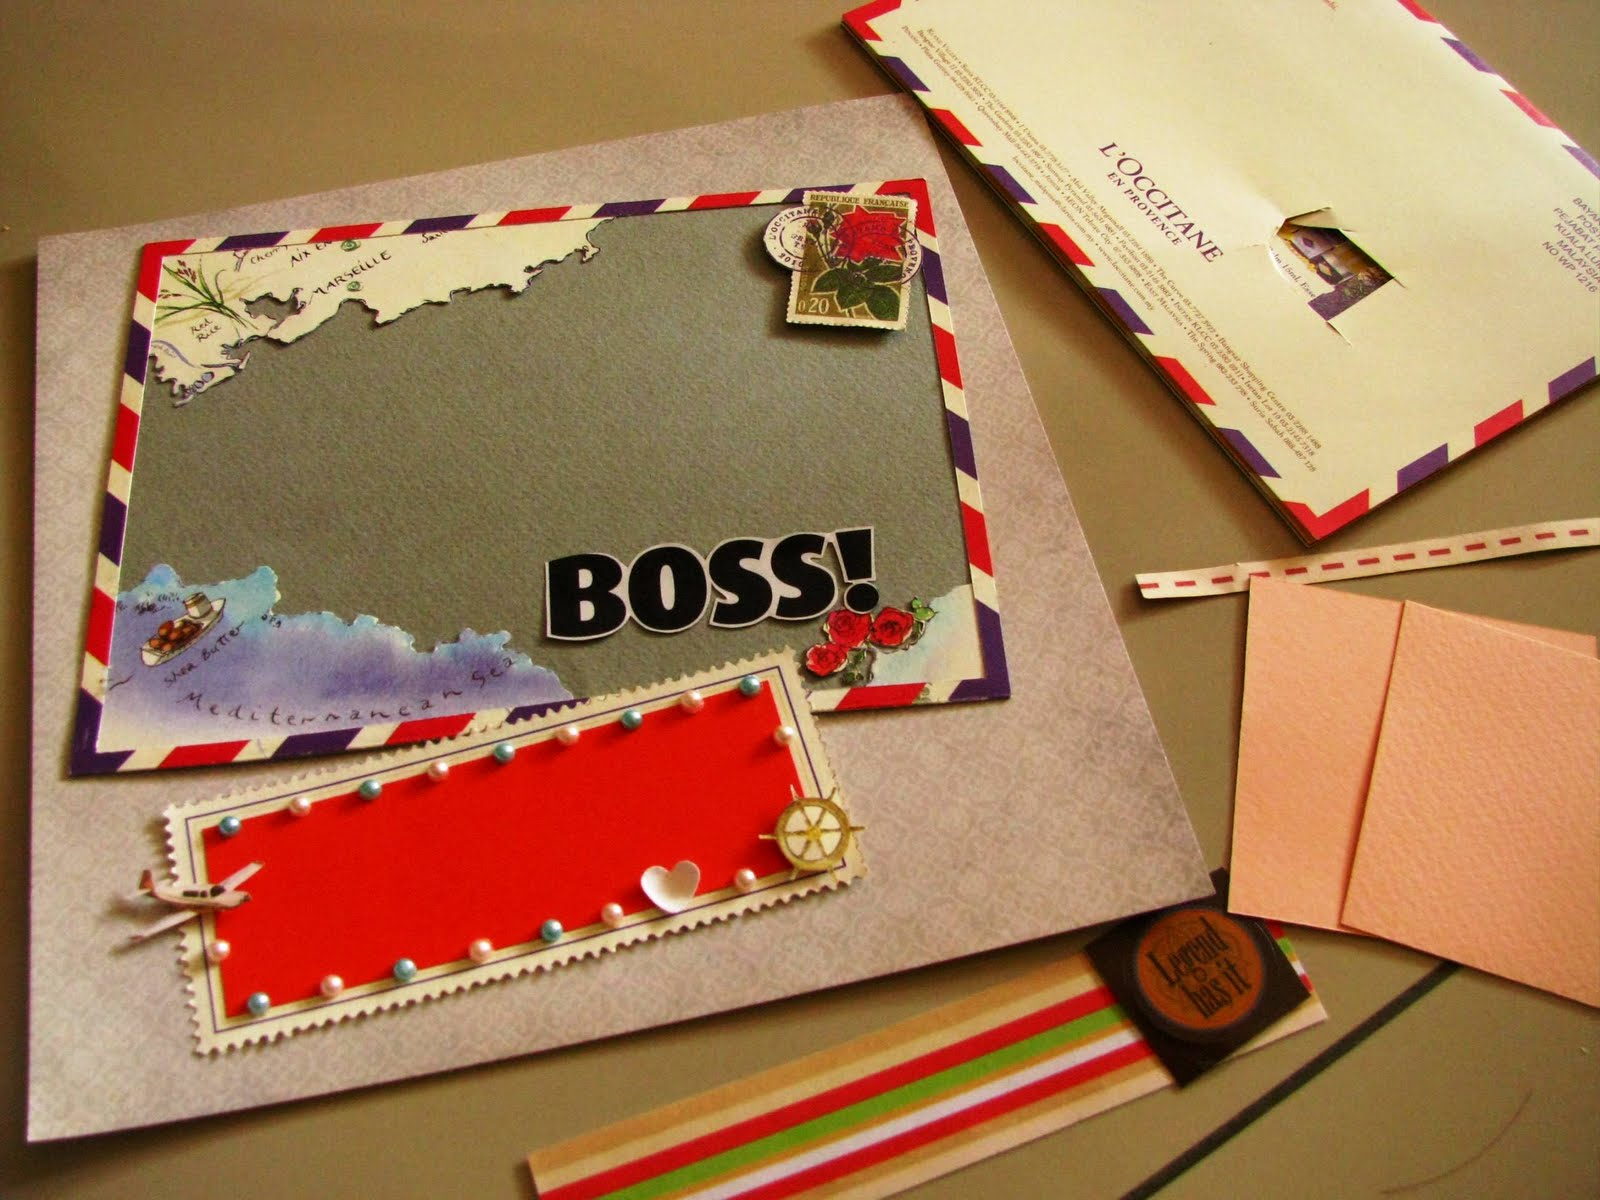 How to scrapbook materials - I Visited Some Craft Shops And Noticed That Scrapbook Materials Can Cost A Bomb So Here I M Trying To Use Mostly Recyclable Materials The L Occitane